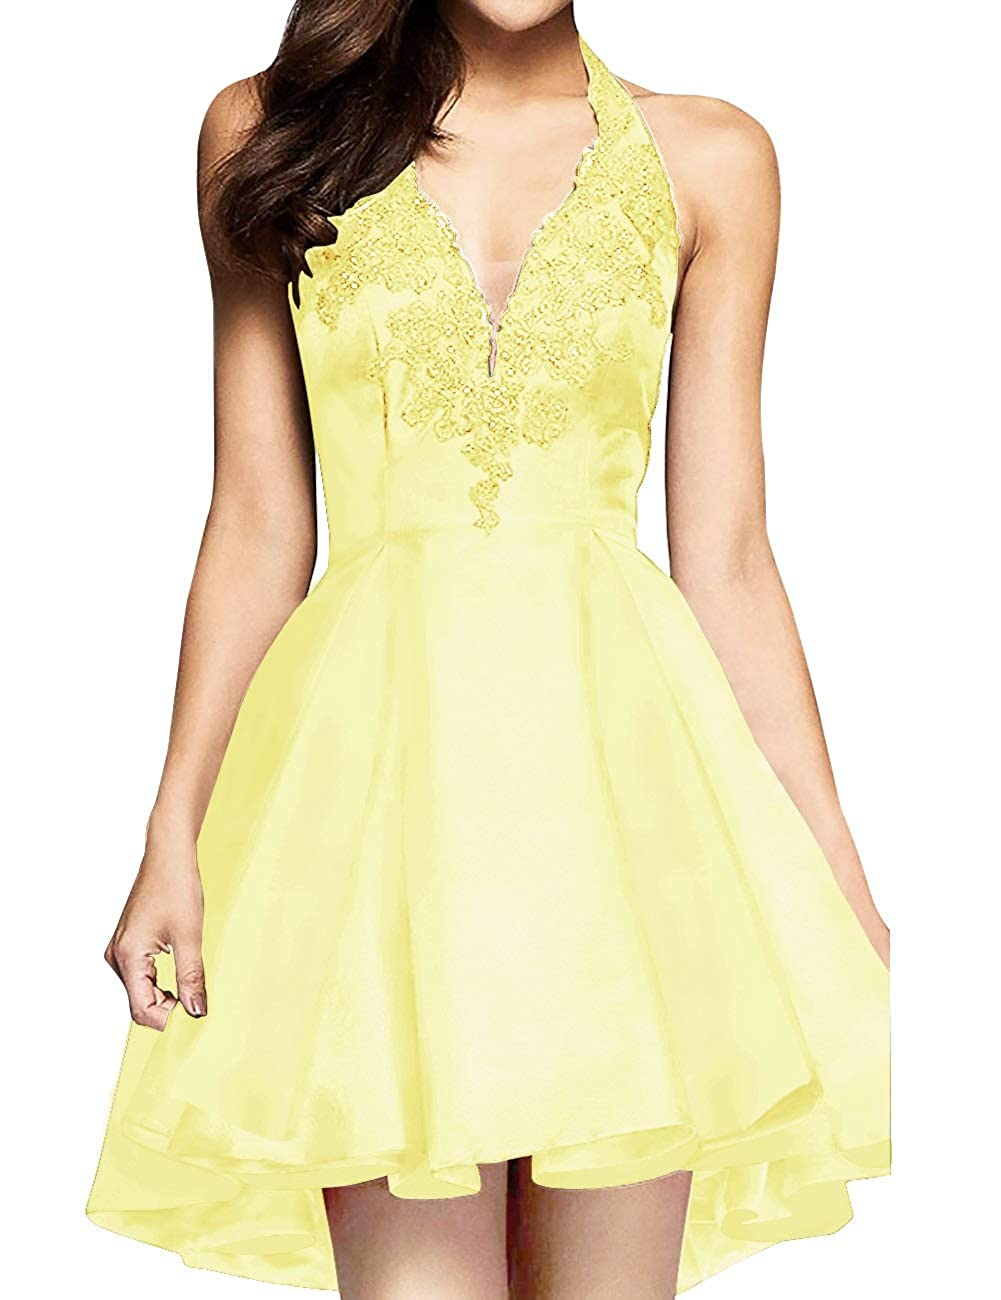 Daffodil MorySong Women's Applique Lace Satin Halter Neck Short Homecoming Cocktail Dress